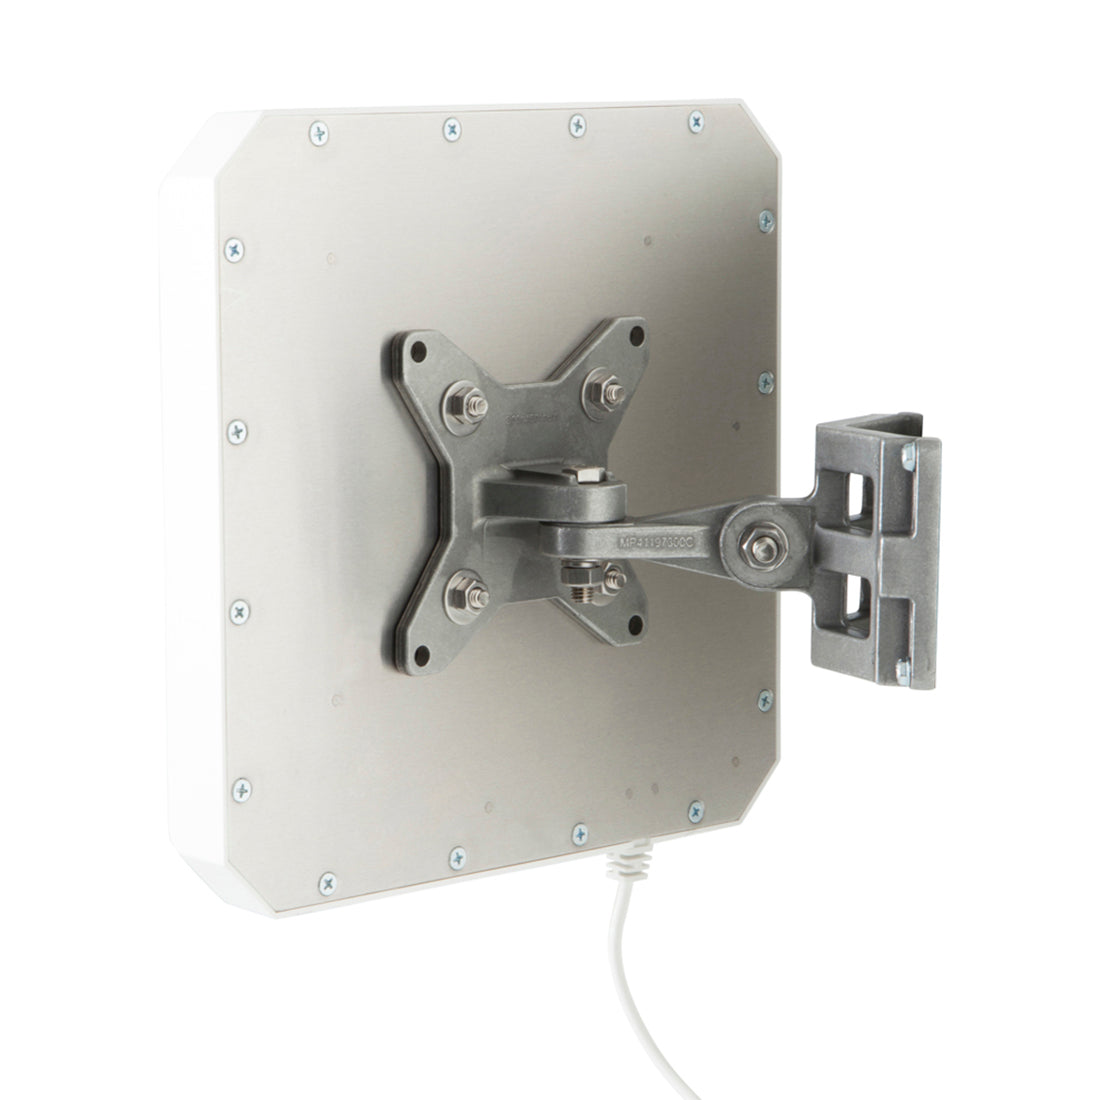 HDMNT-100MM: Heavy Duty Indoor Outdoor Mounting Bracket for